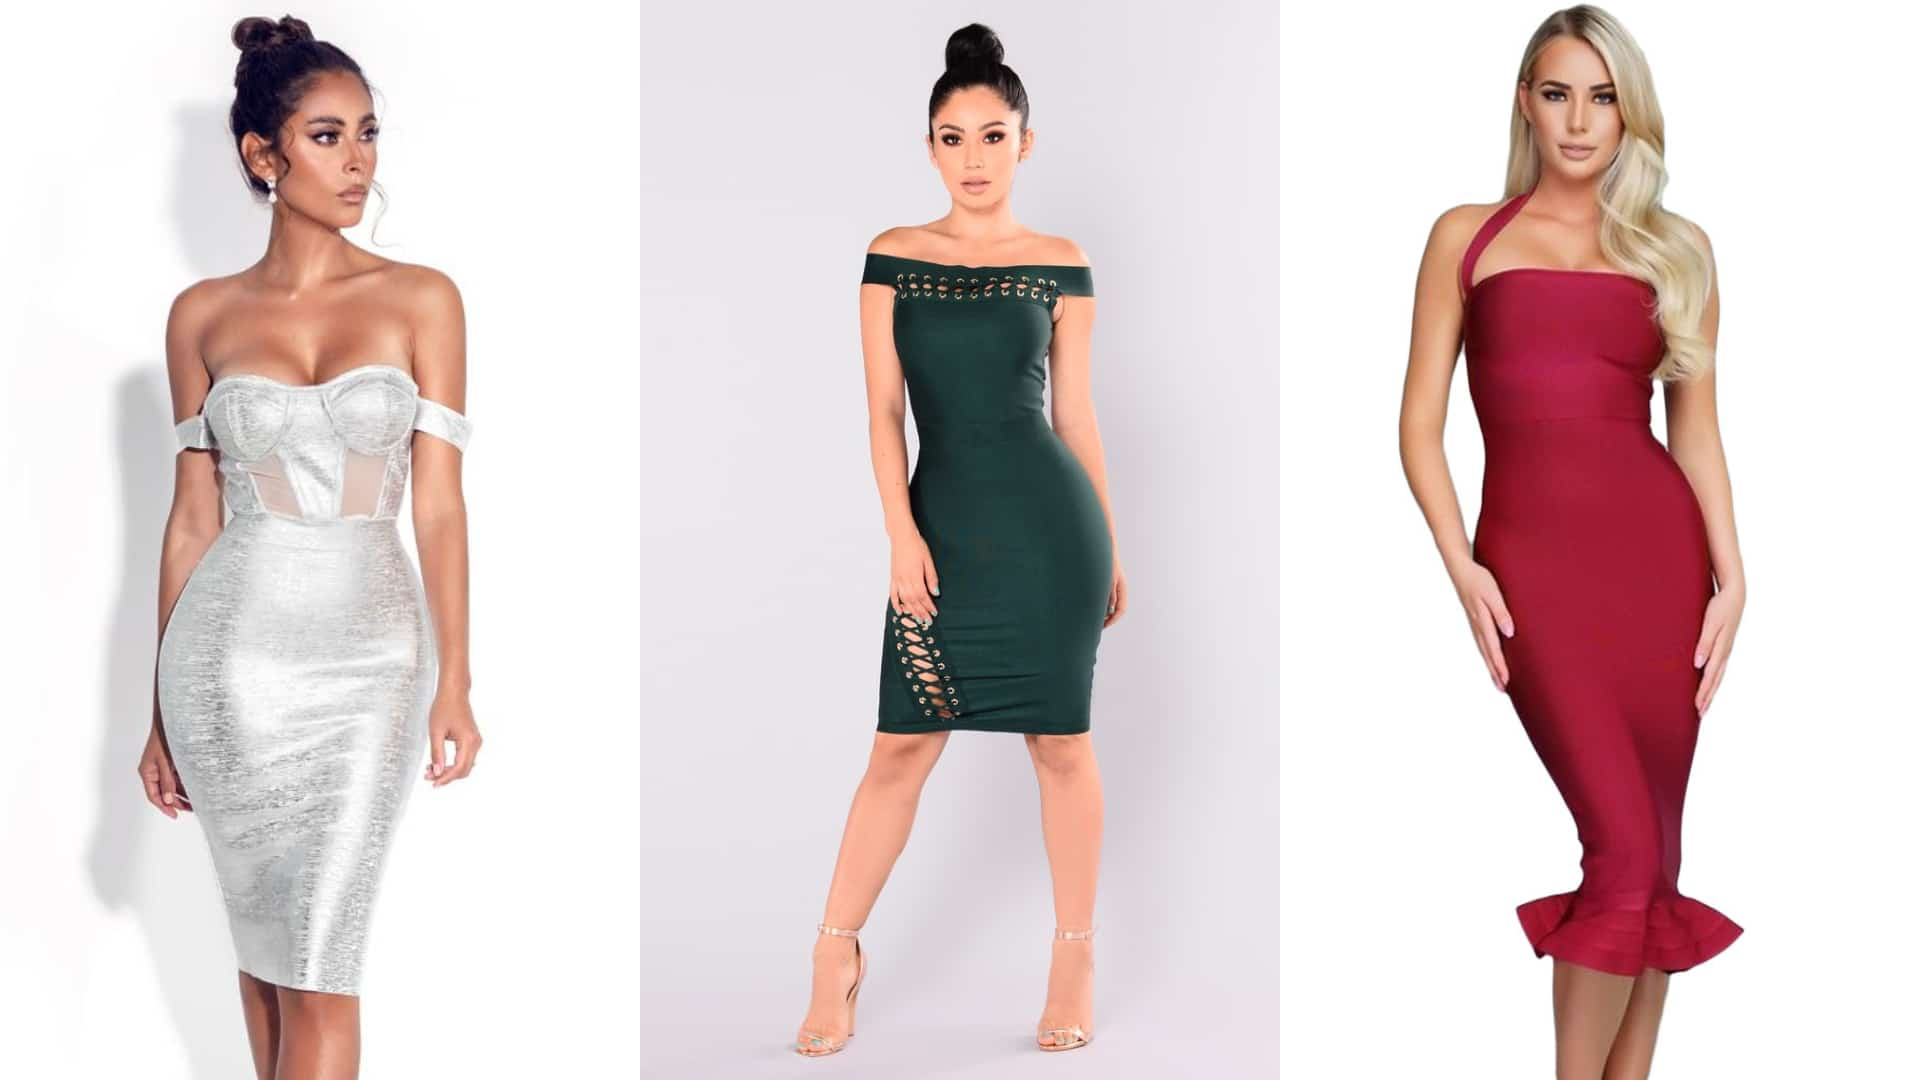 bandage dress, A Quick Guide on Bandage dresses: Oozing with Sexiness, Outdressing